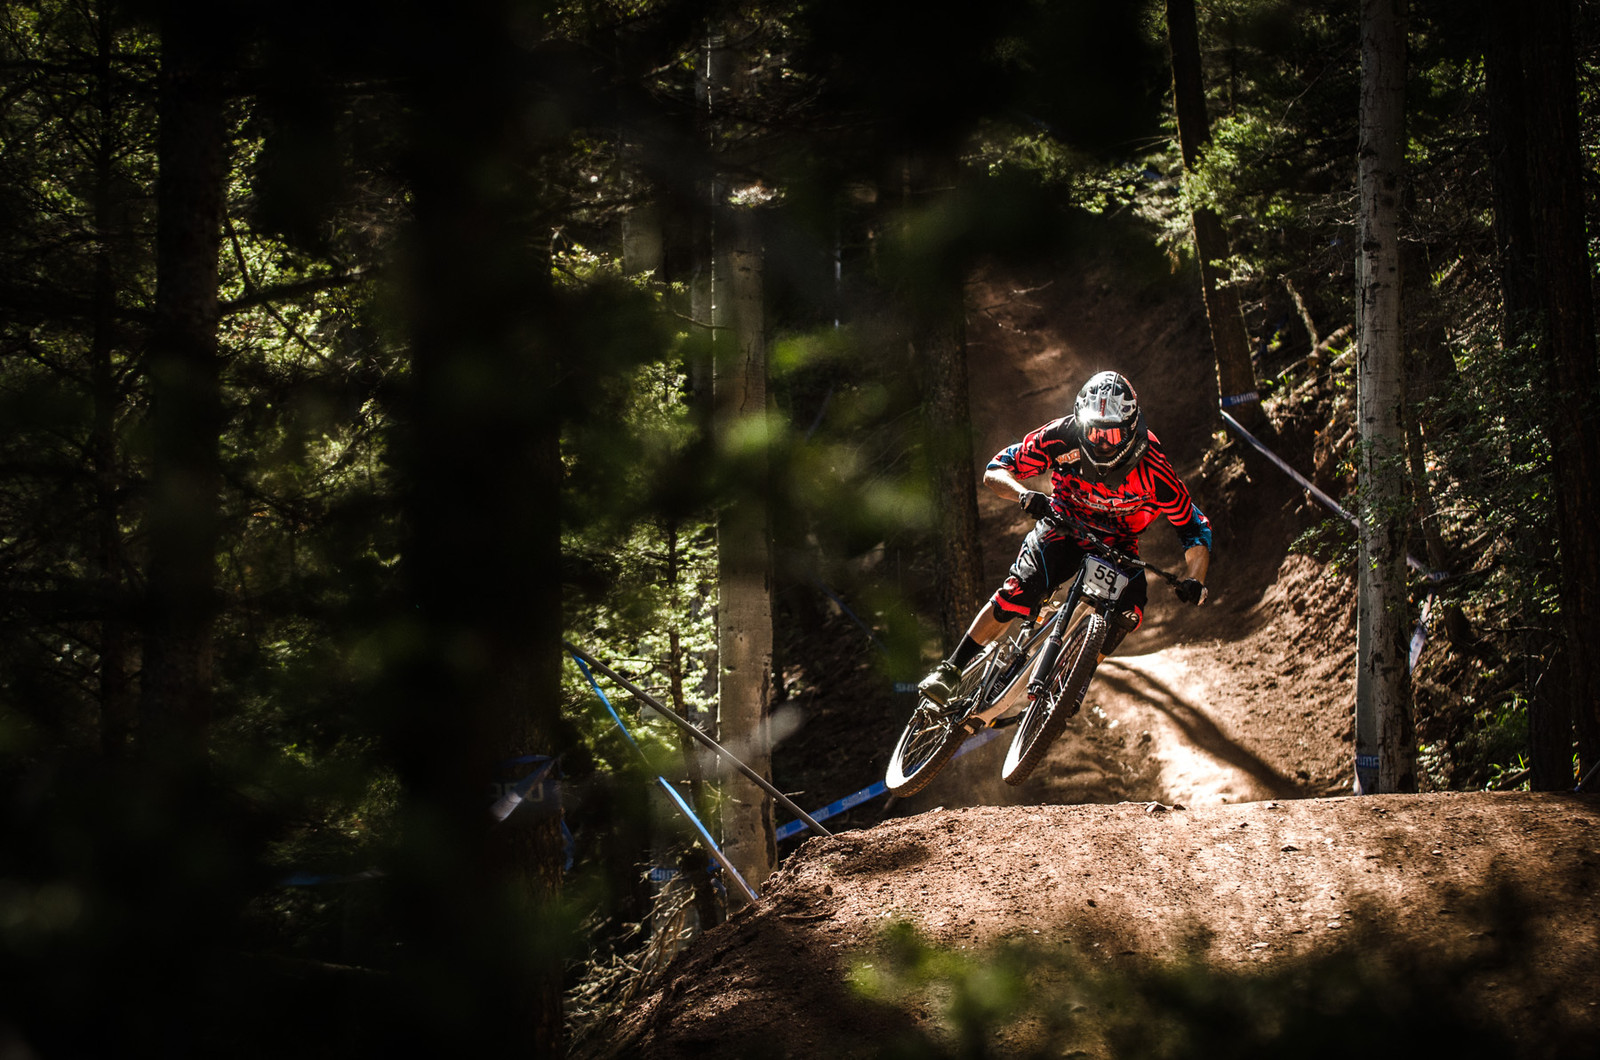 Kevin Aiello, U.S. National Champs DH - U.S. National Championship Downhill Finals Photos - Mountain Biking Pictures - Vital MTB